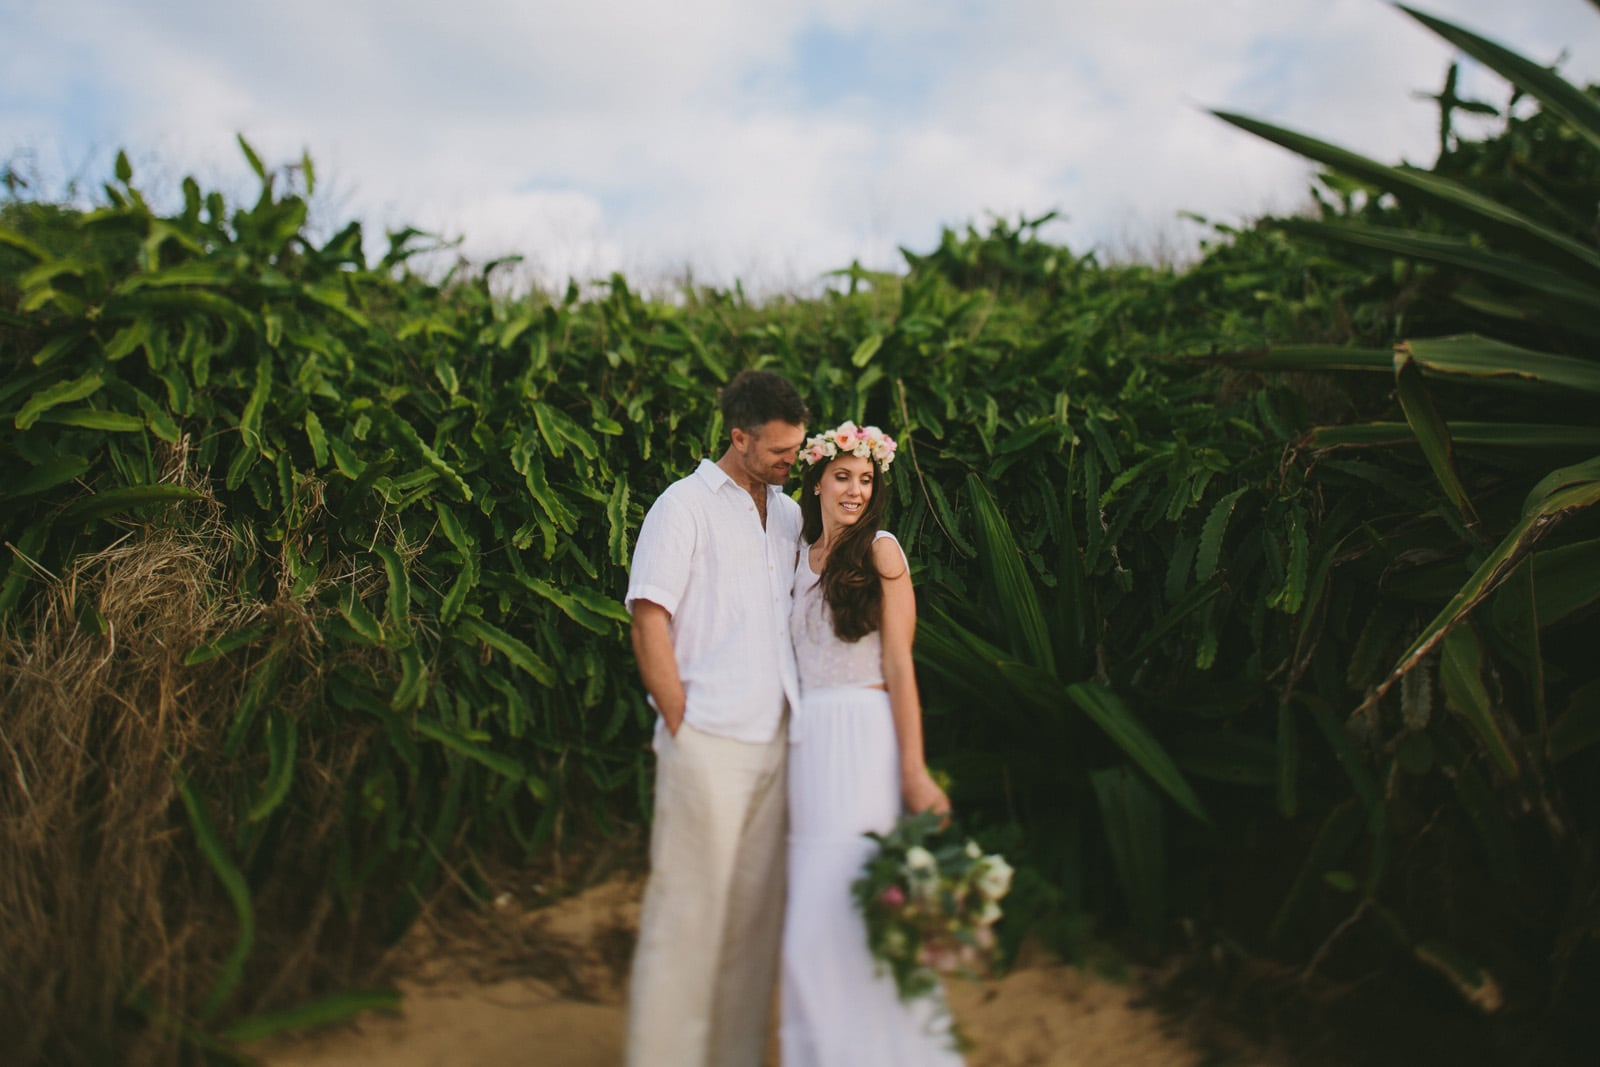 Maui_Wedding_Wailea_Kapalua_Hawaii_Photographer_008